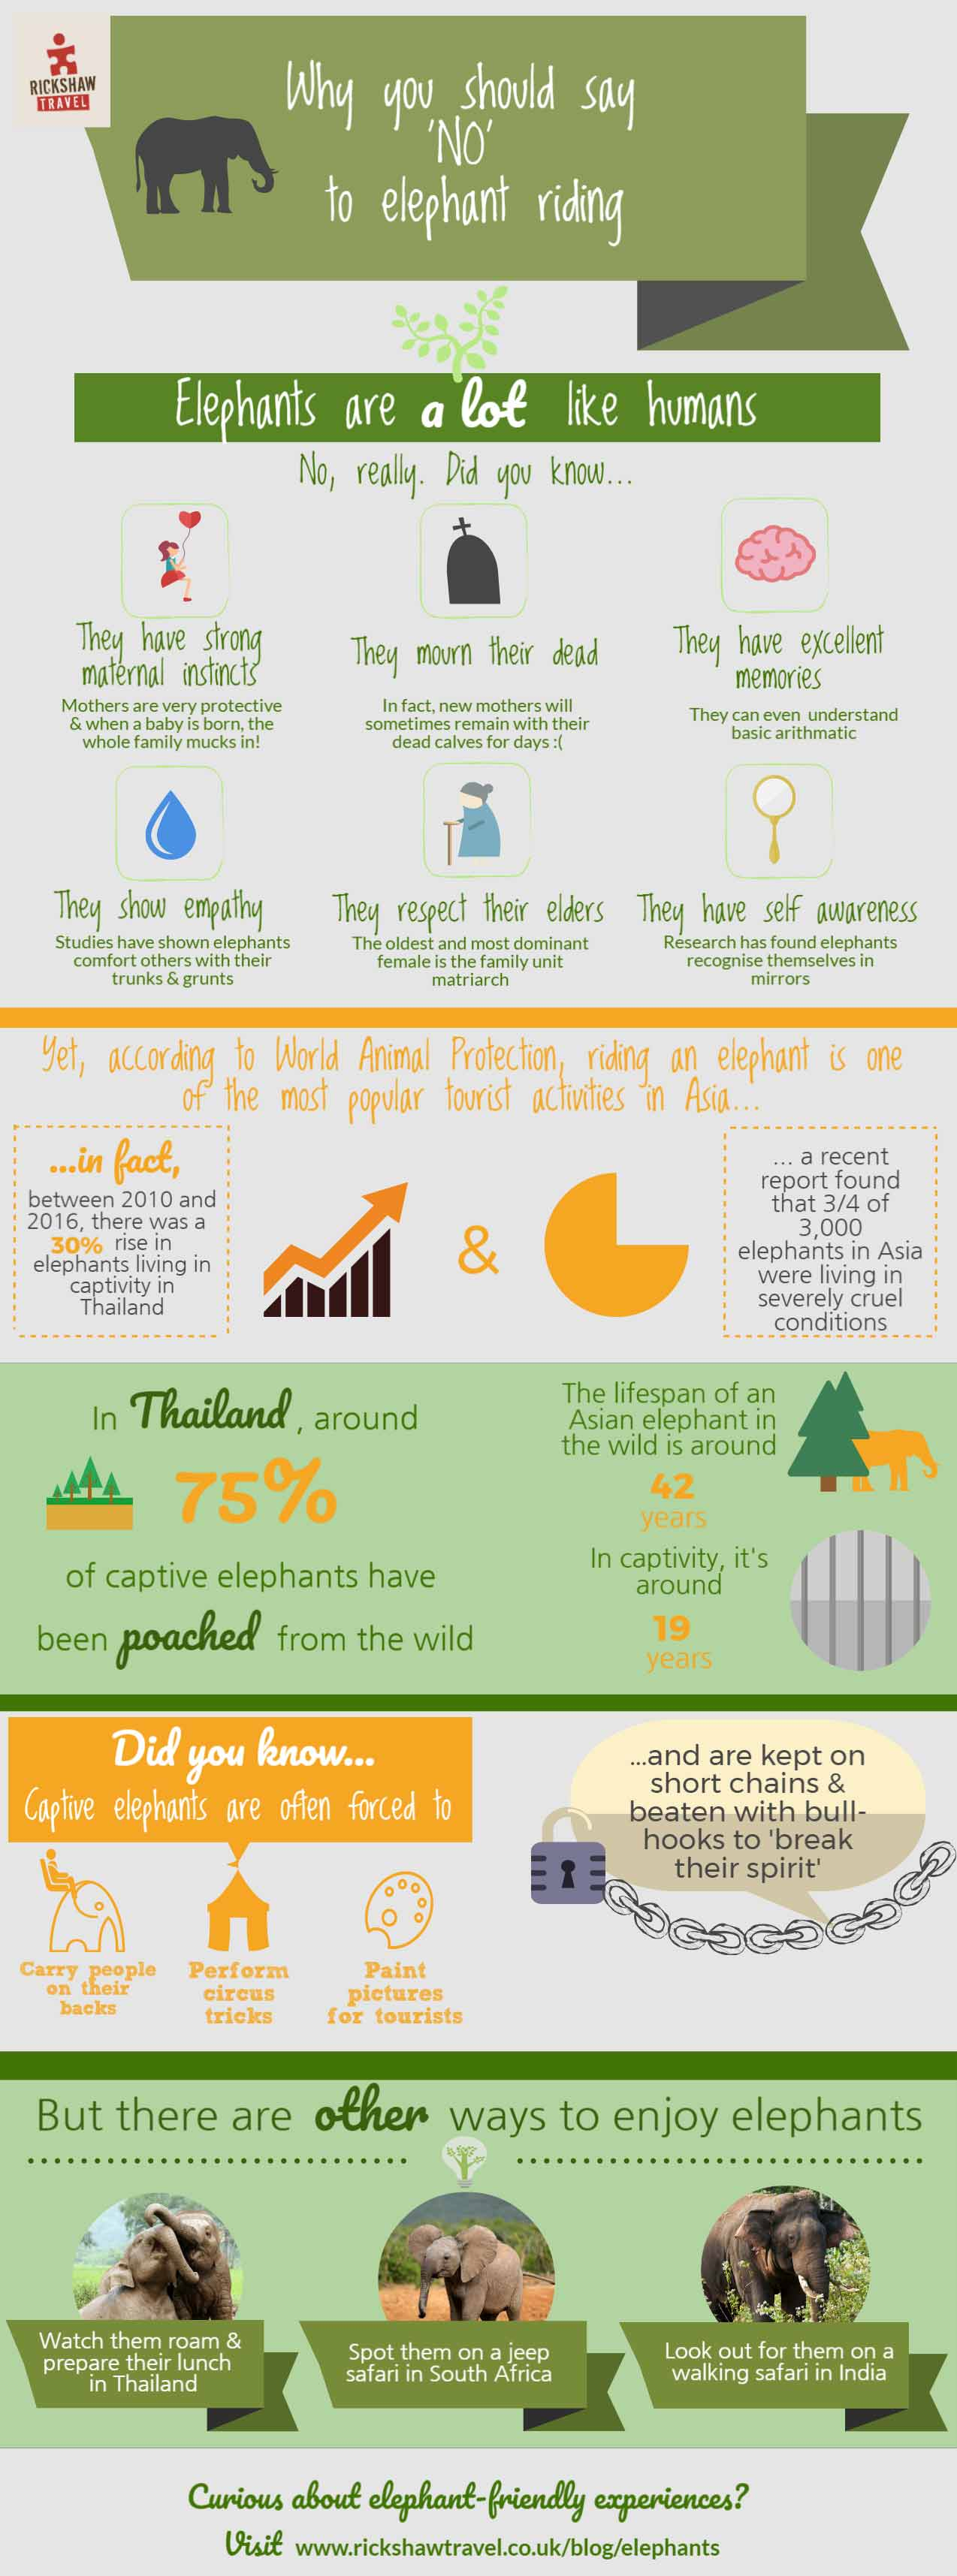 Why we said NO to elephant riding infographic